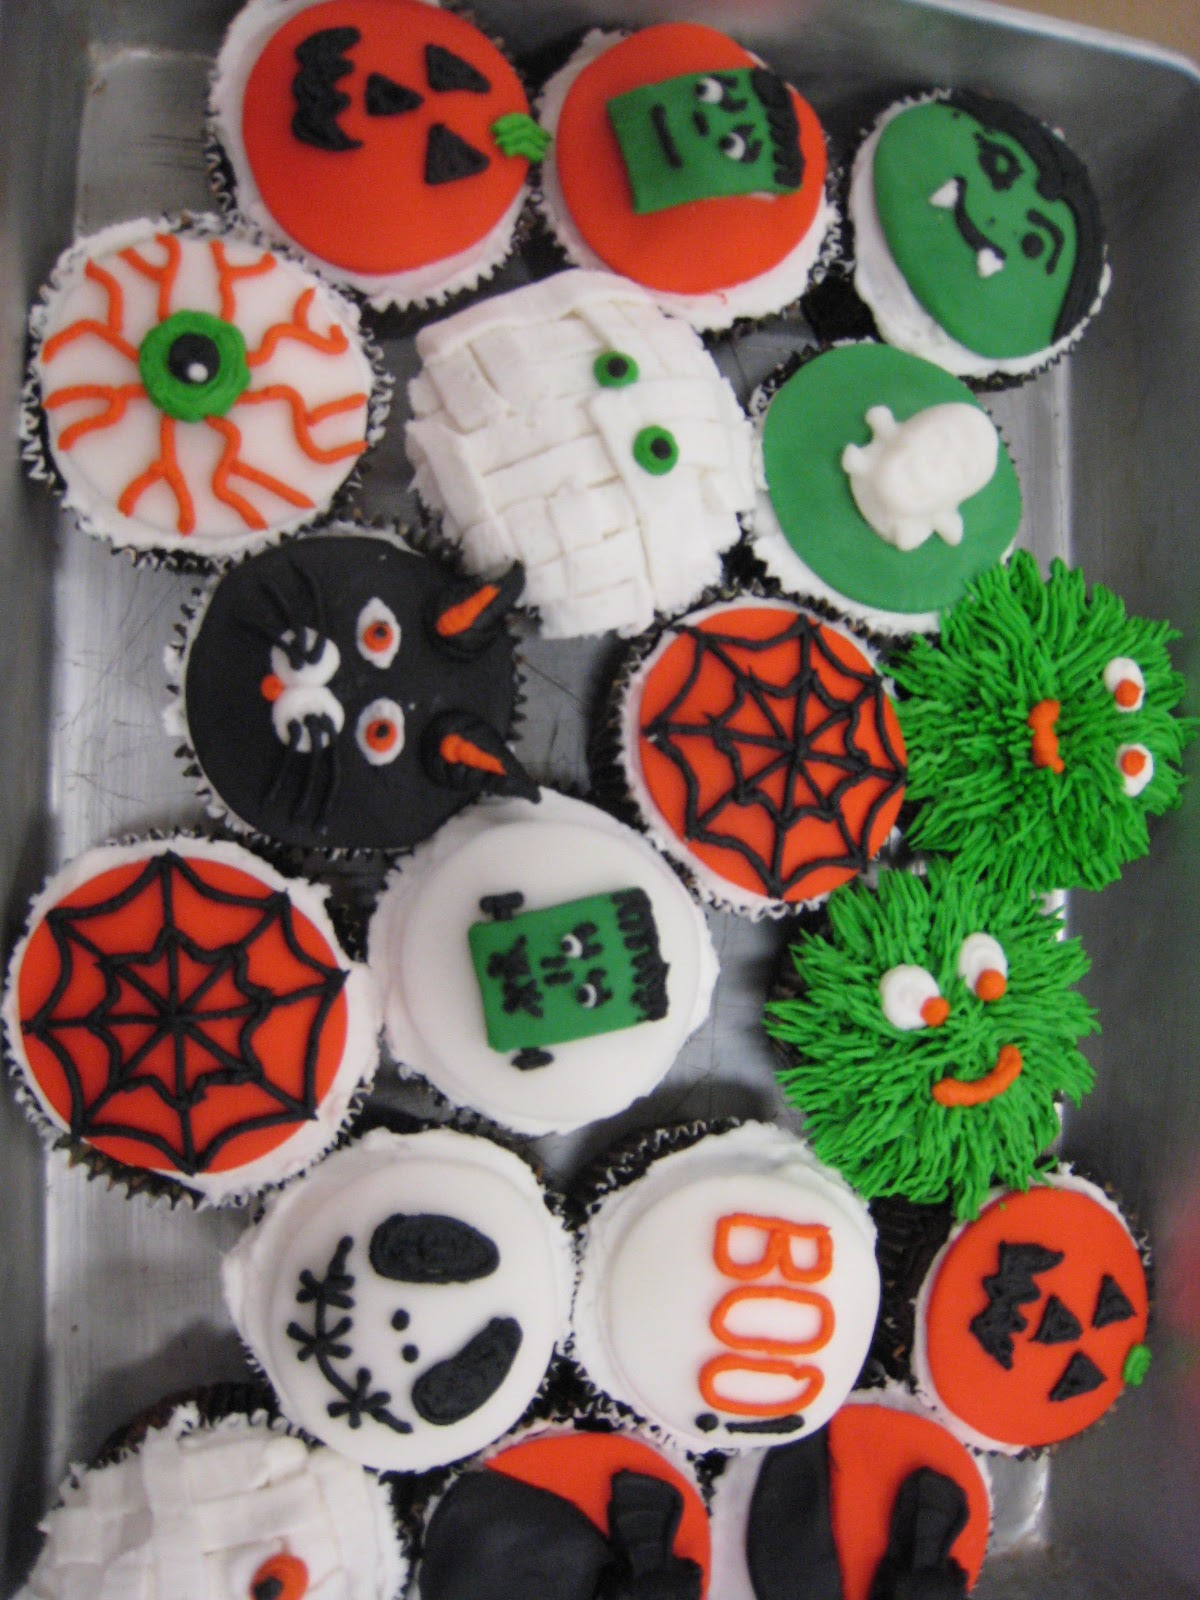 Judy cakes sugar arts halloween cupcake decorating class - Halloween decorations for cupcakes ...